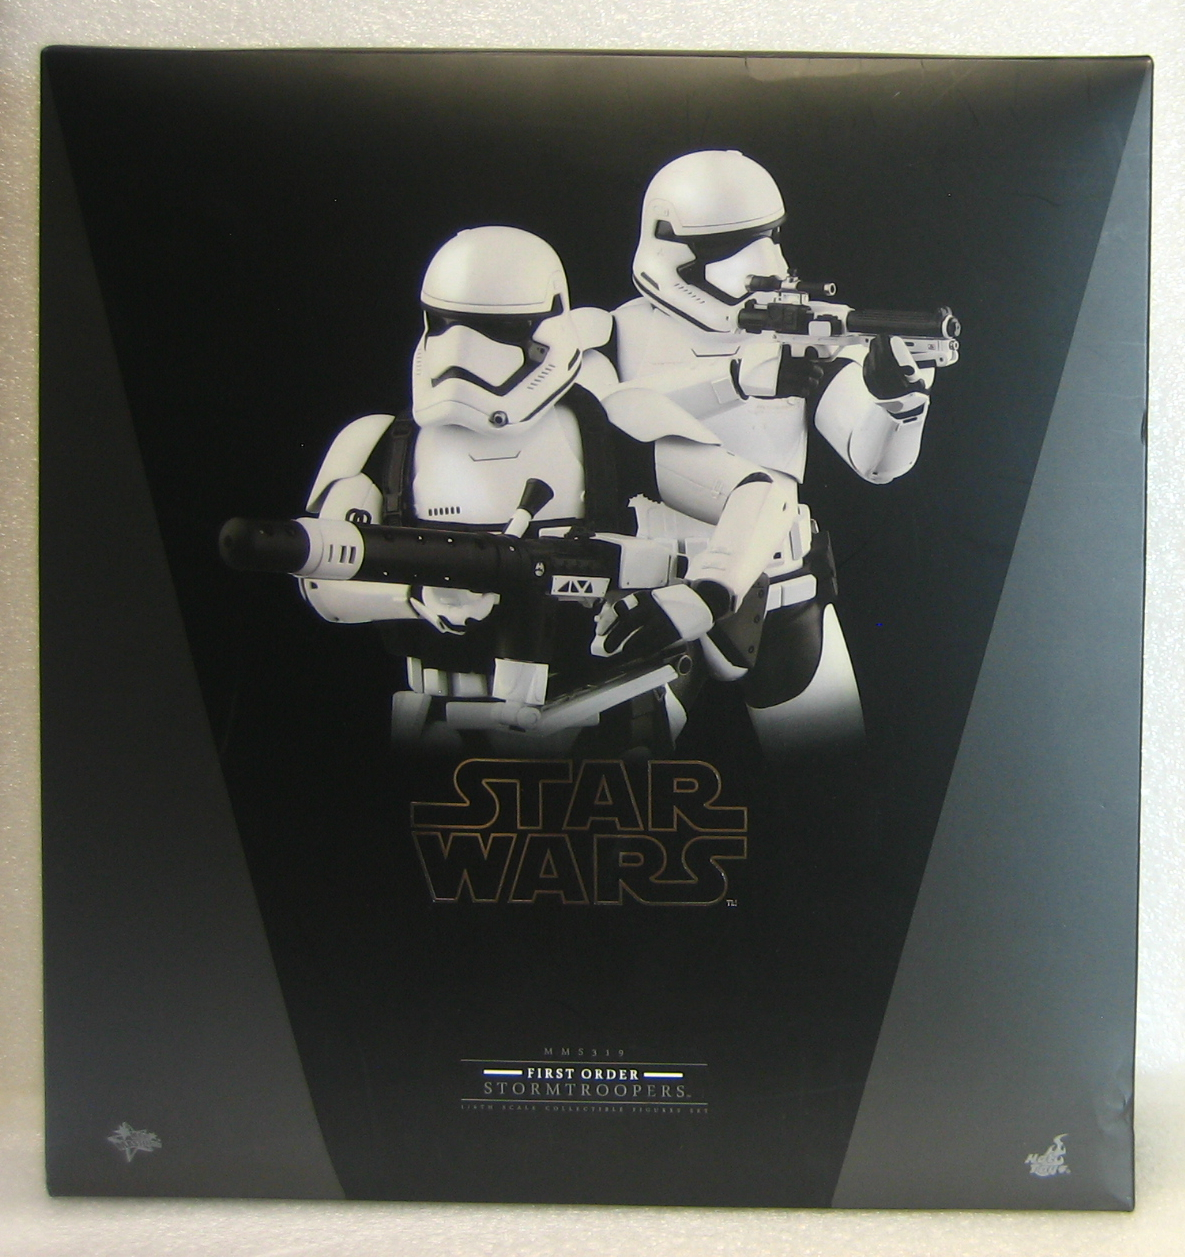 Hot Toys Star Wars First Order Stormtroopers 1:6 Scale Figure Set